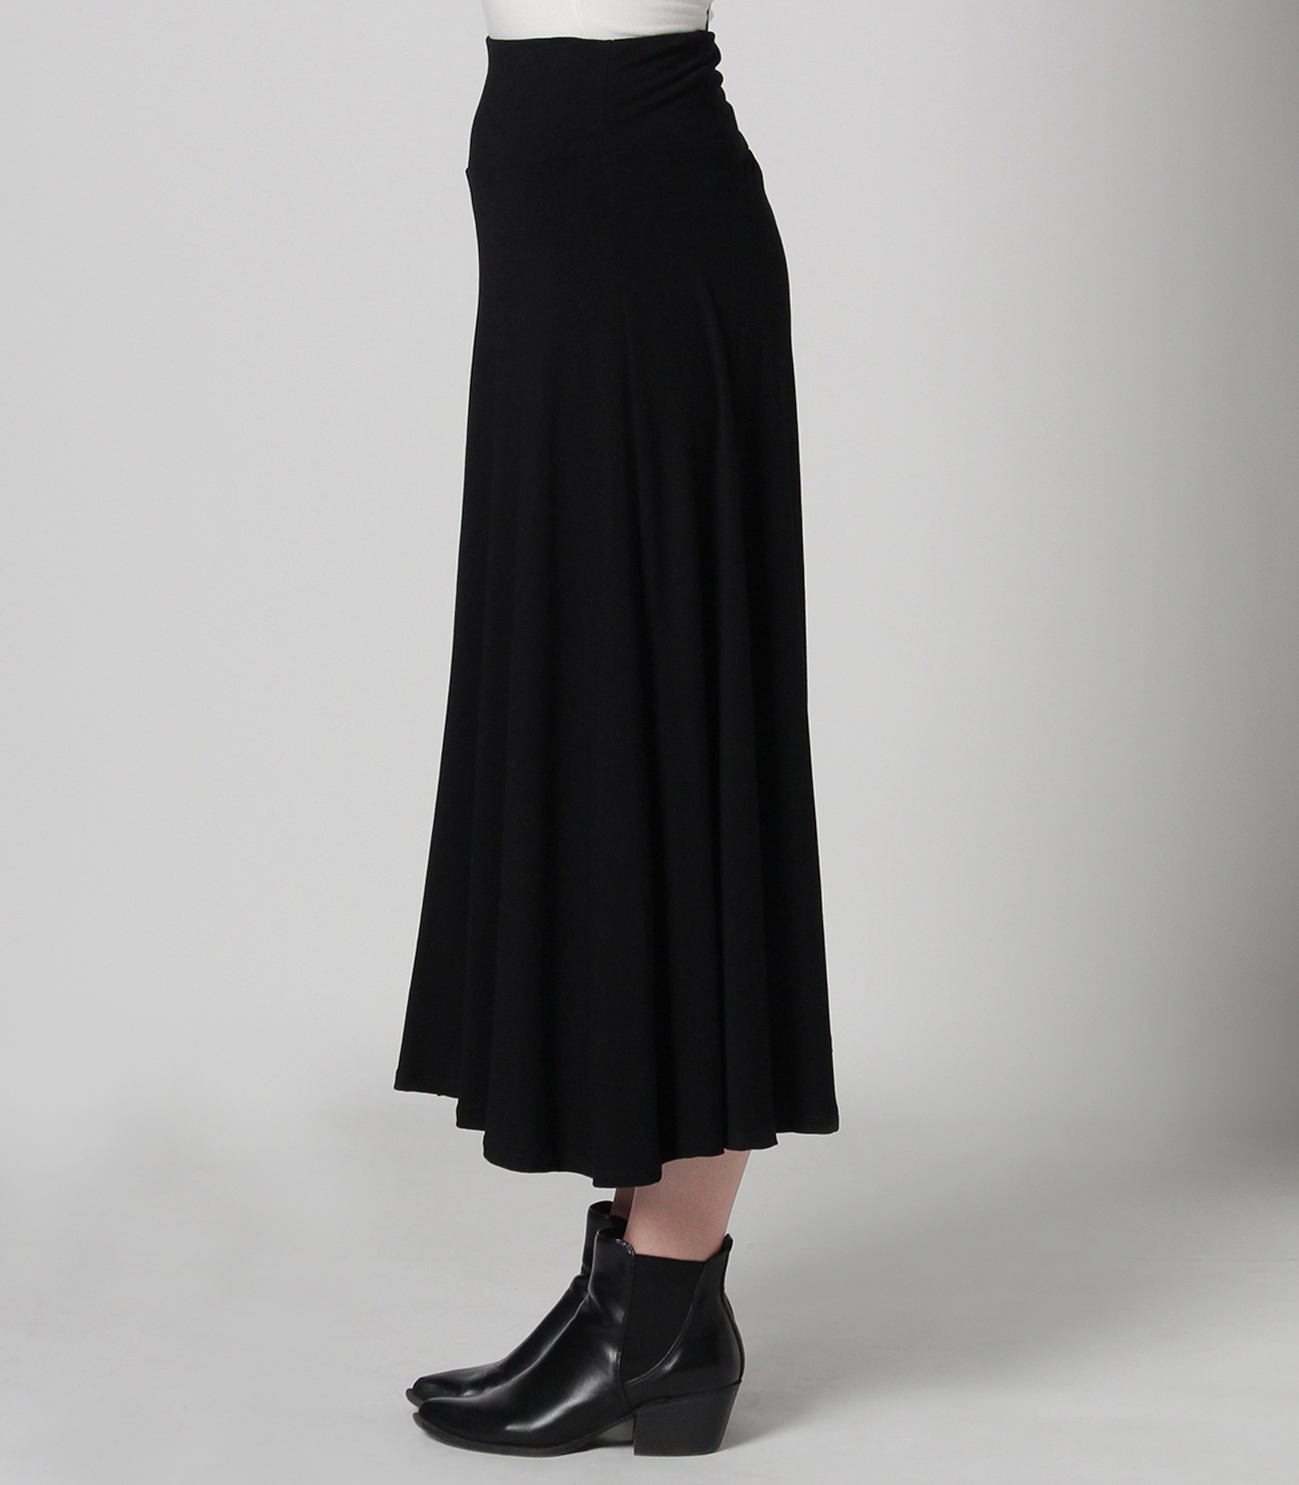 Flower print long skirt 詳細画像 black 3